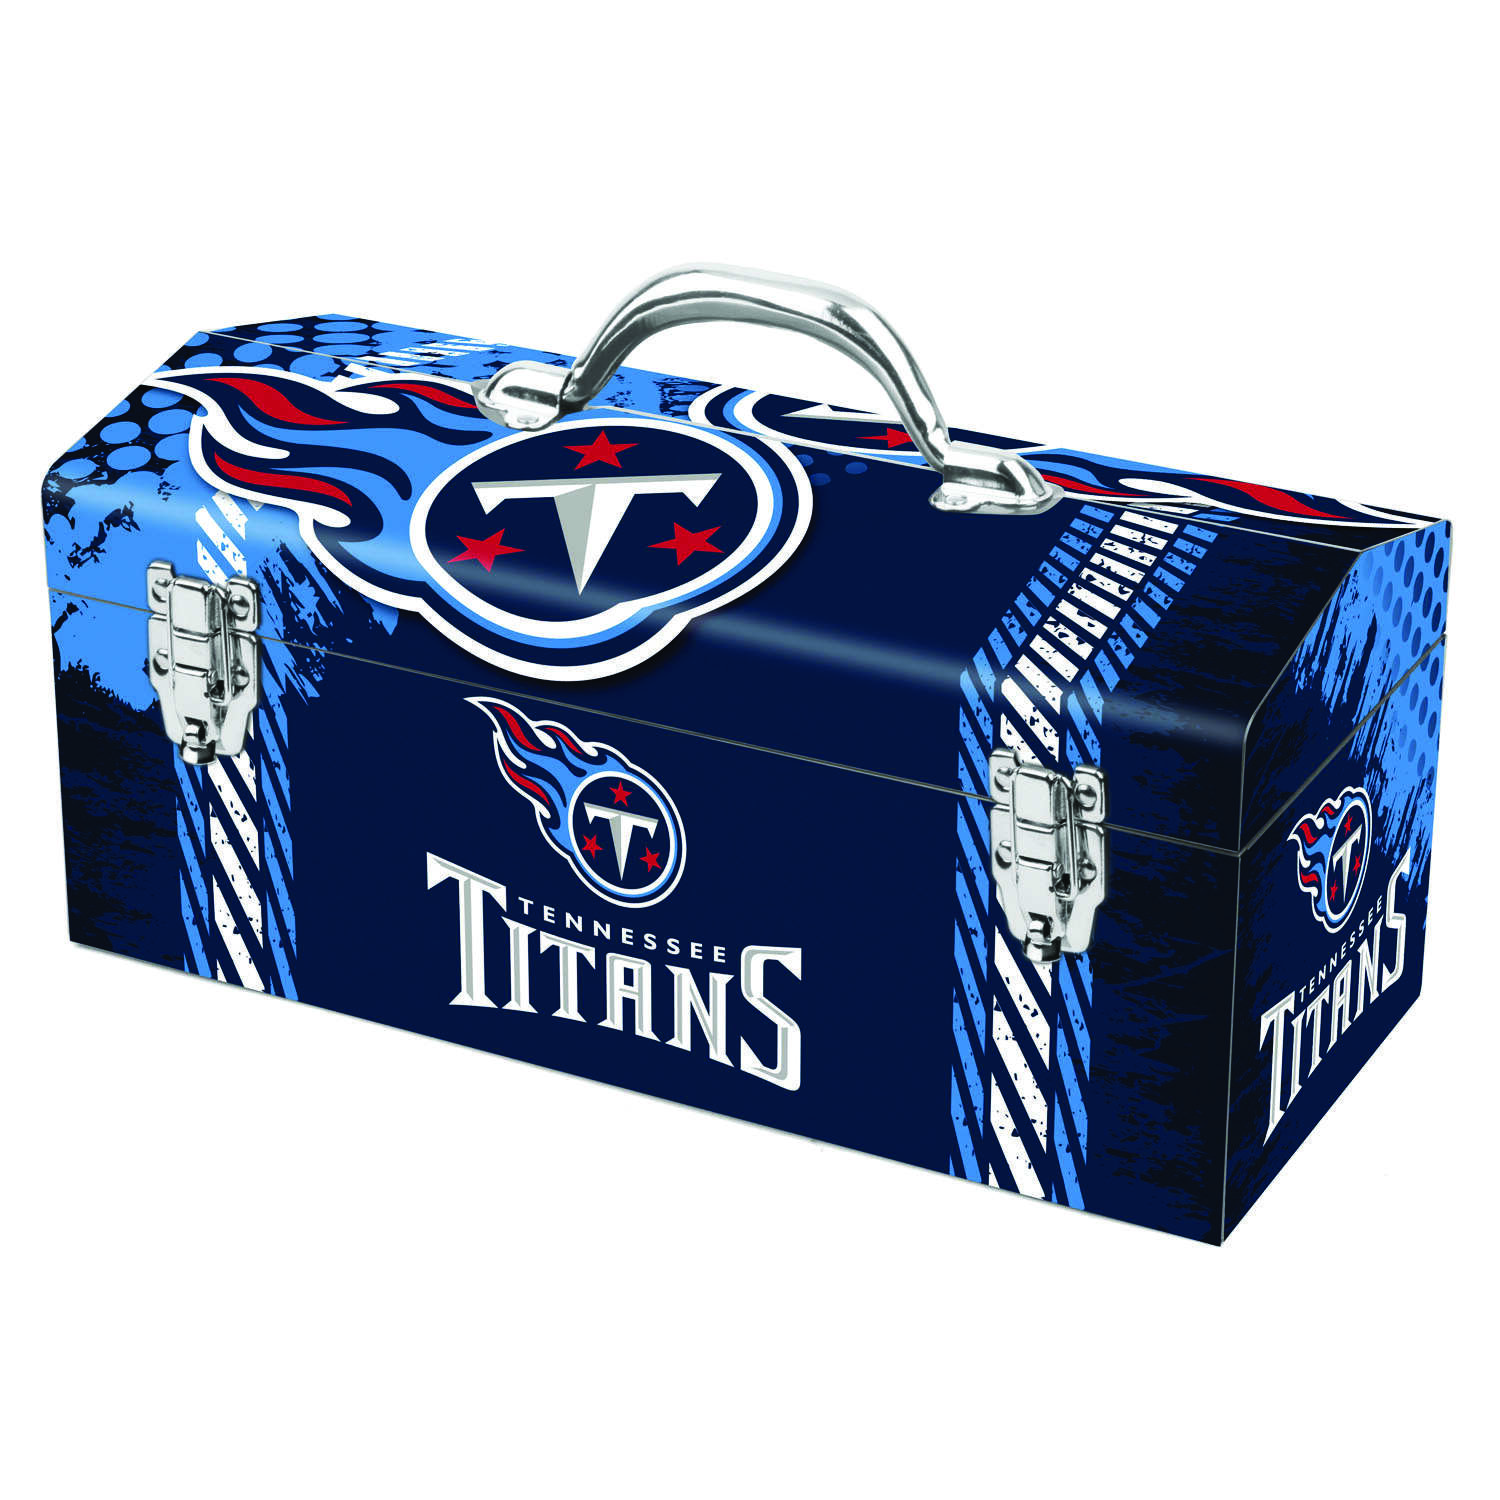 Windco 16.25 in. Steel Tennessee Titans Art Deco Tool Box 7.1 in. W x 7.75 in. H